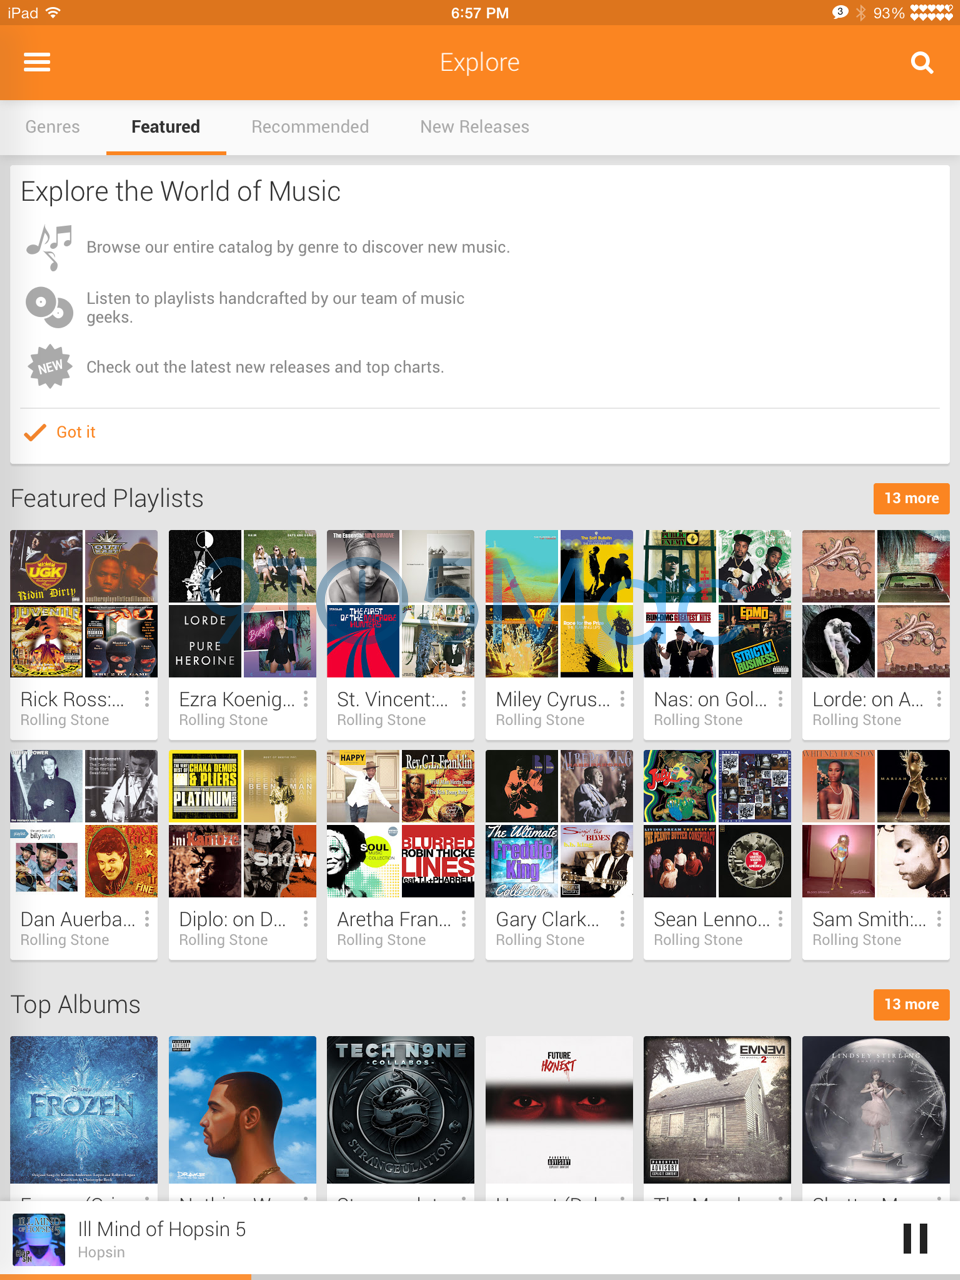 Google Play Music for iPad (image 001)